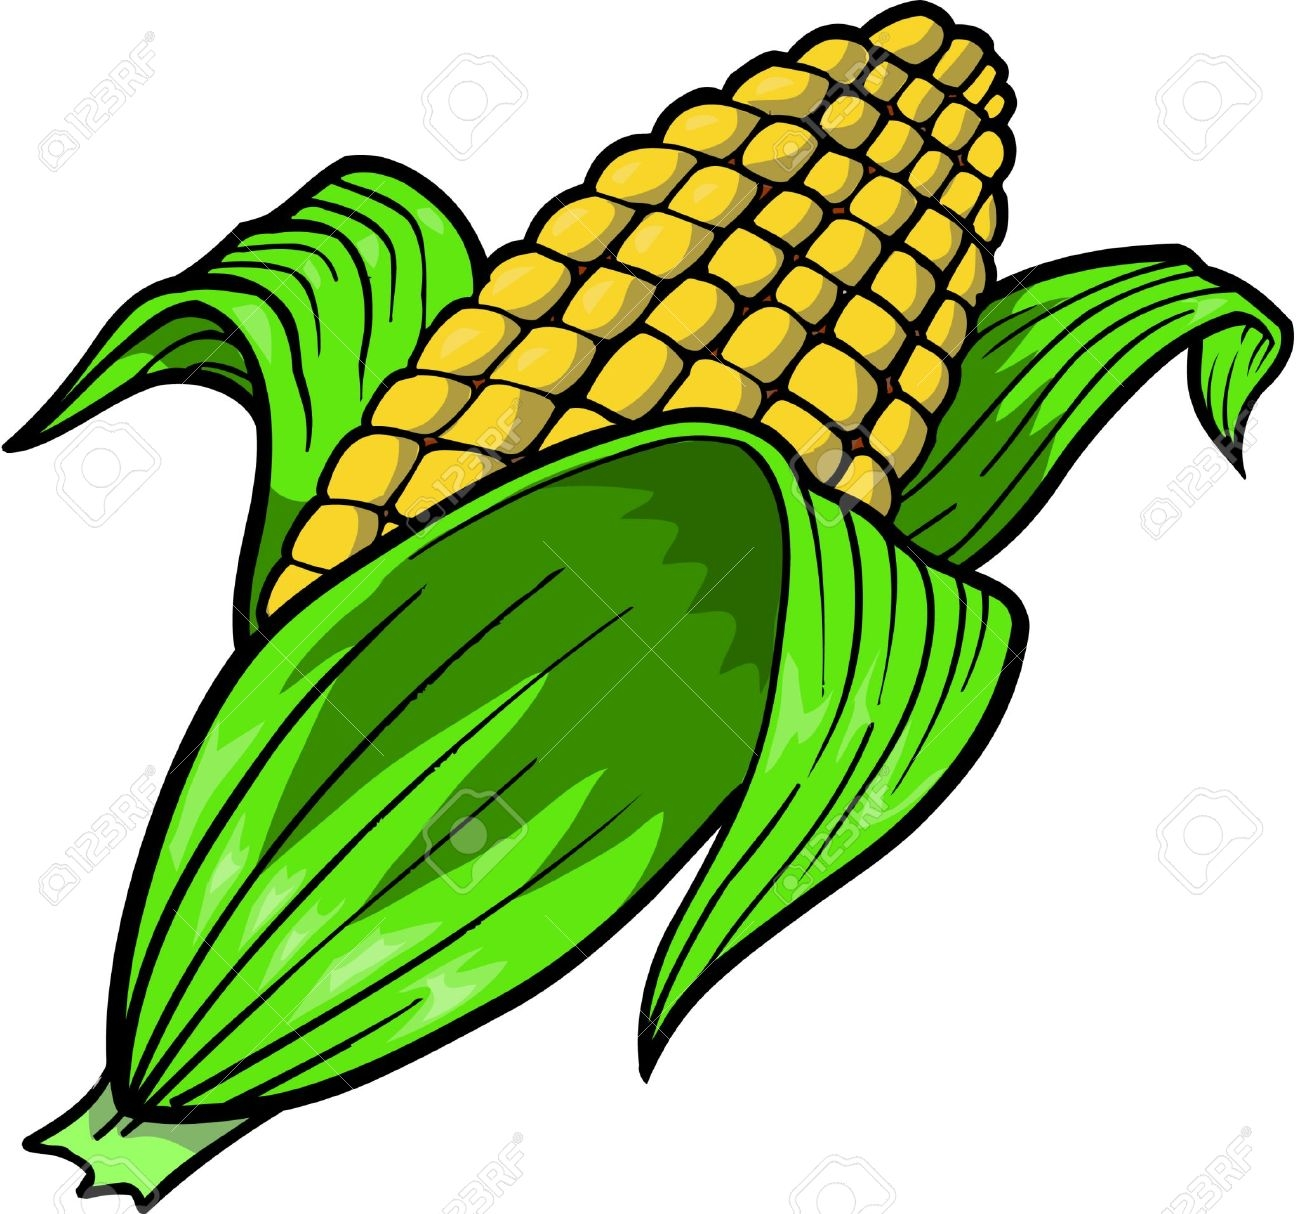 corn clipart at getdrawings com free for personal use corn clipart rh getdrawings com corn clip art cartoon corn clip art black and white